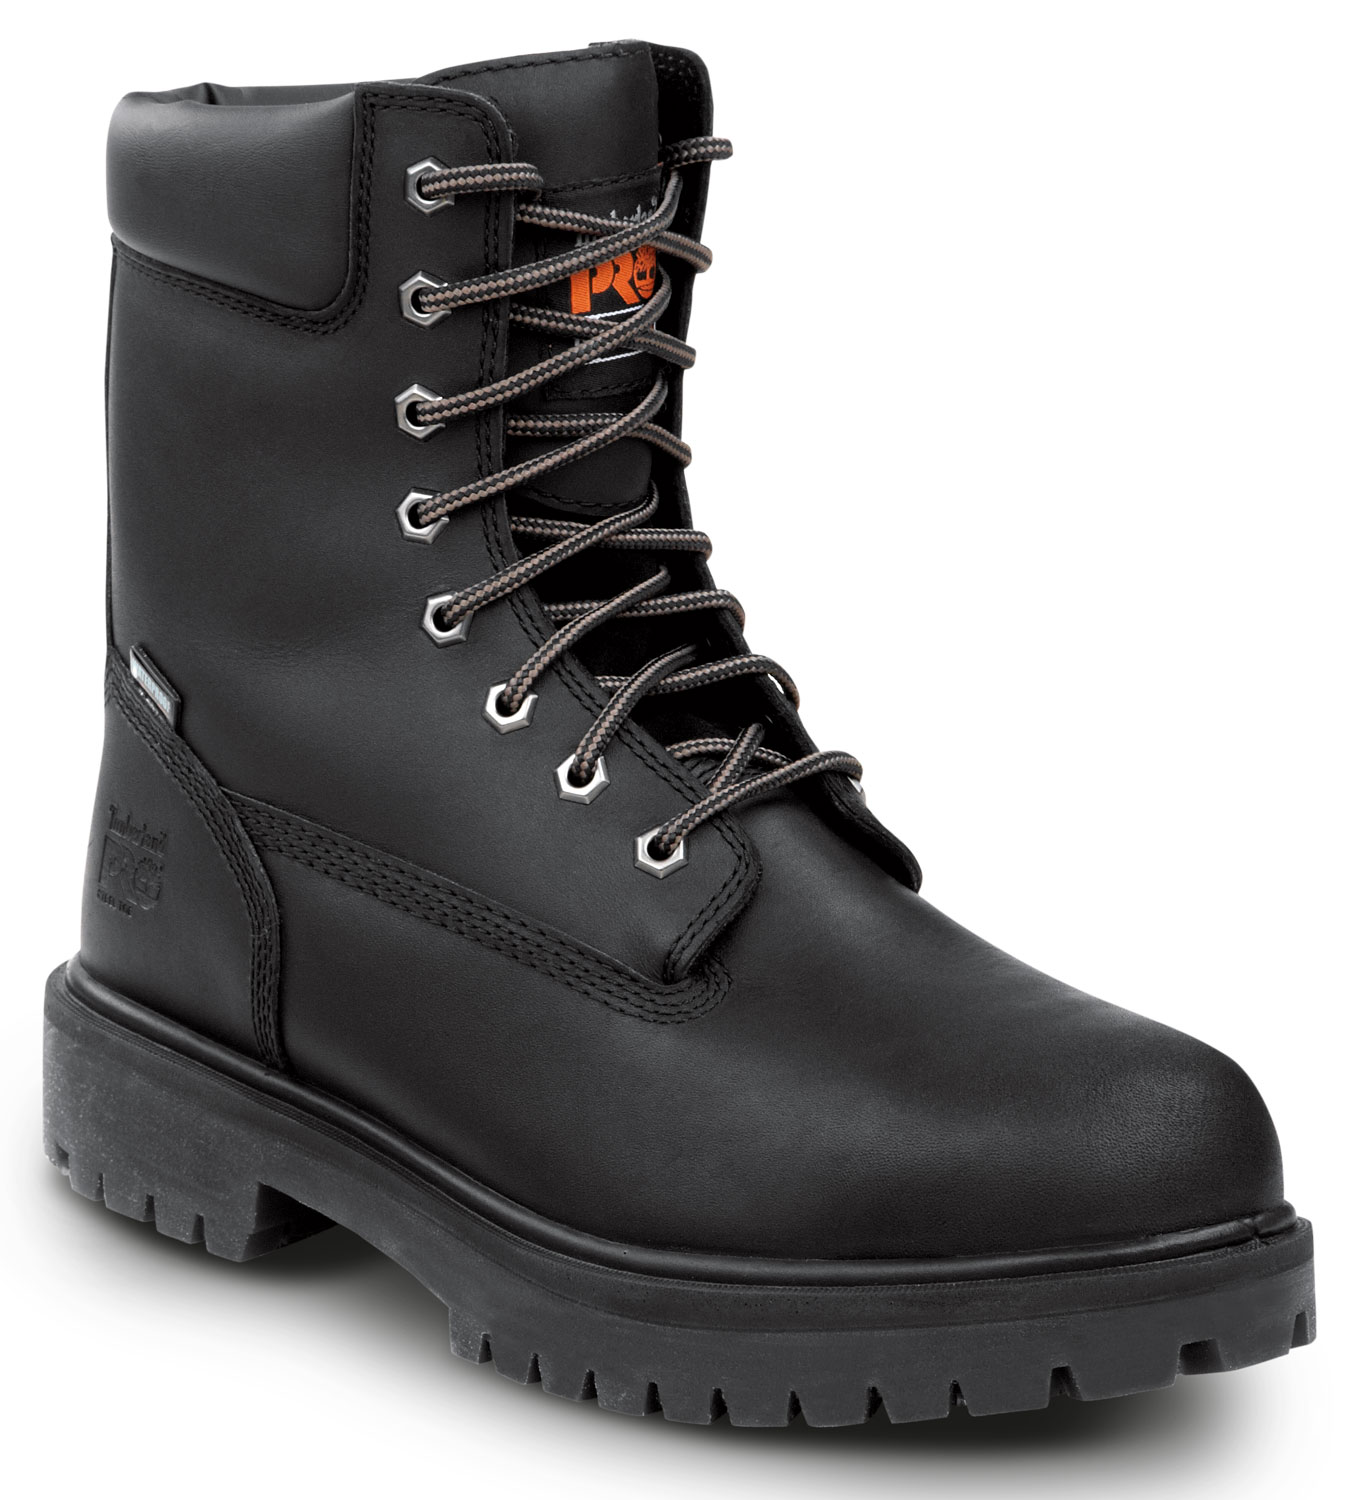 9fcbb5a2510 Timberland PRO 8IN Direct Attach Men's Steel Toe Boot